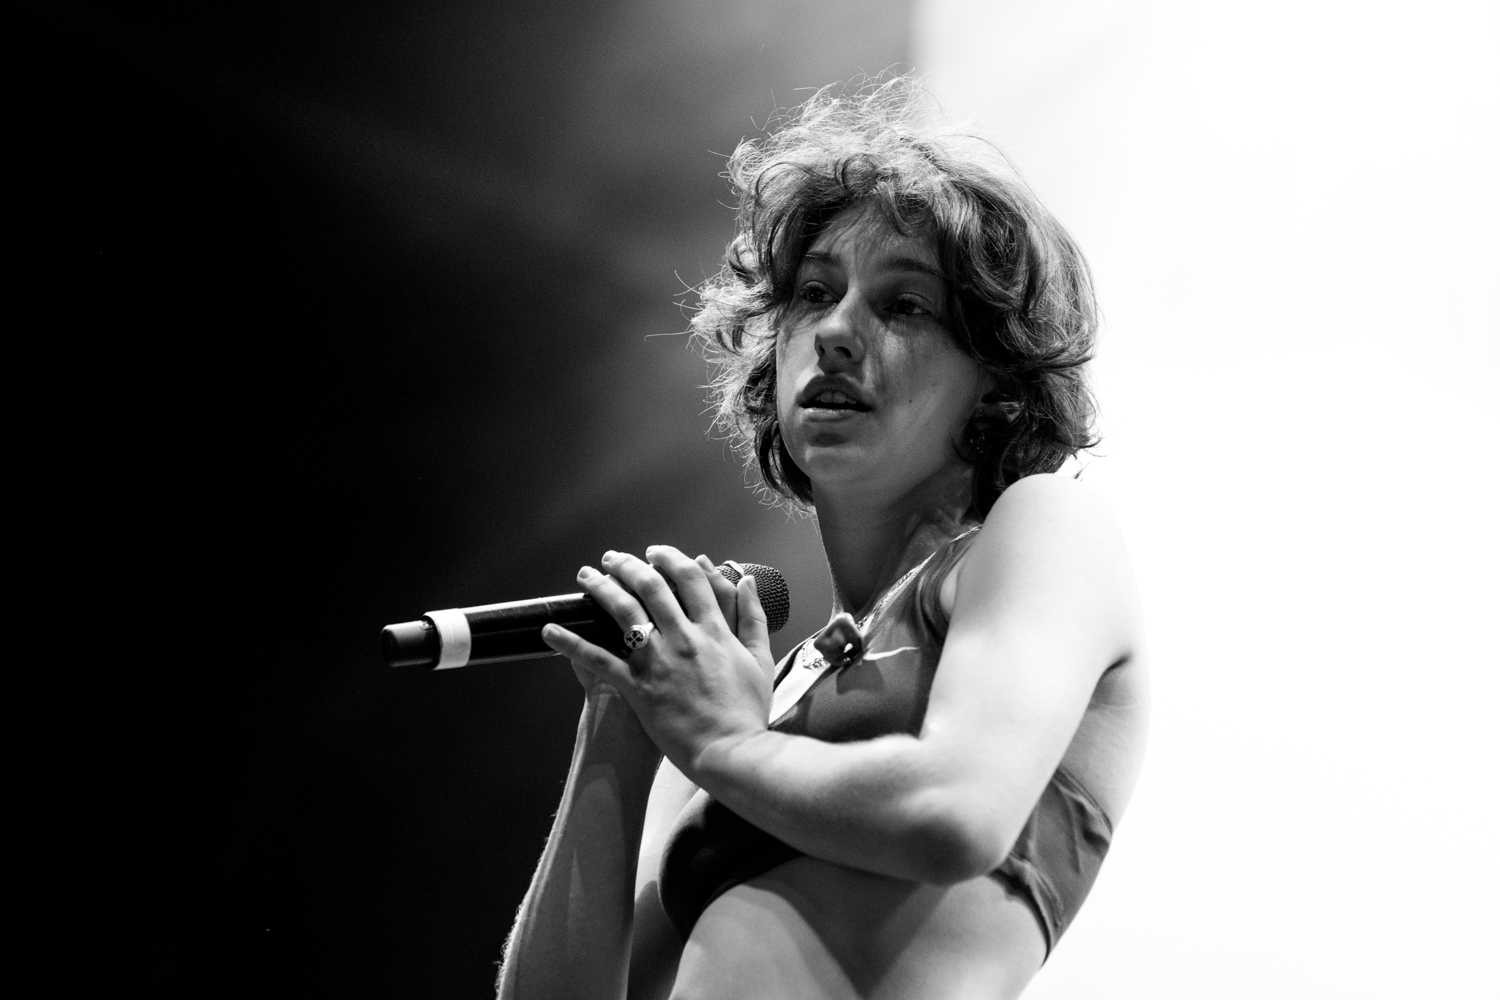 King Princess @ Rock Werchter 2019 (© Sanne Gommers)